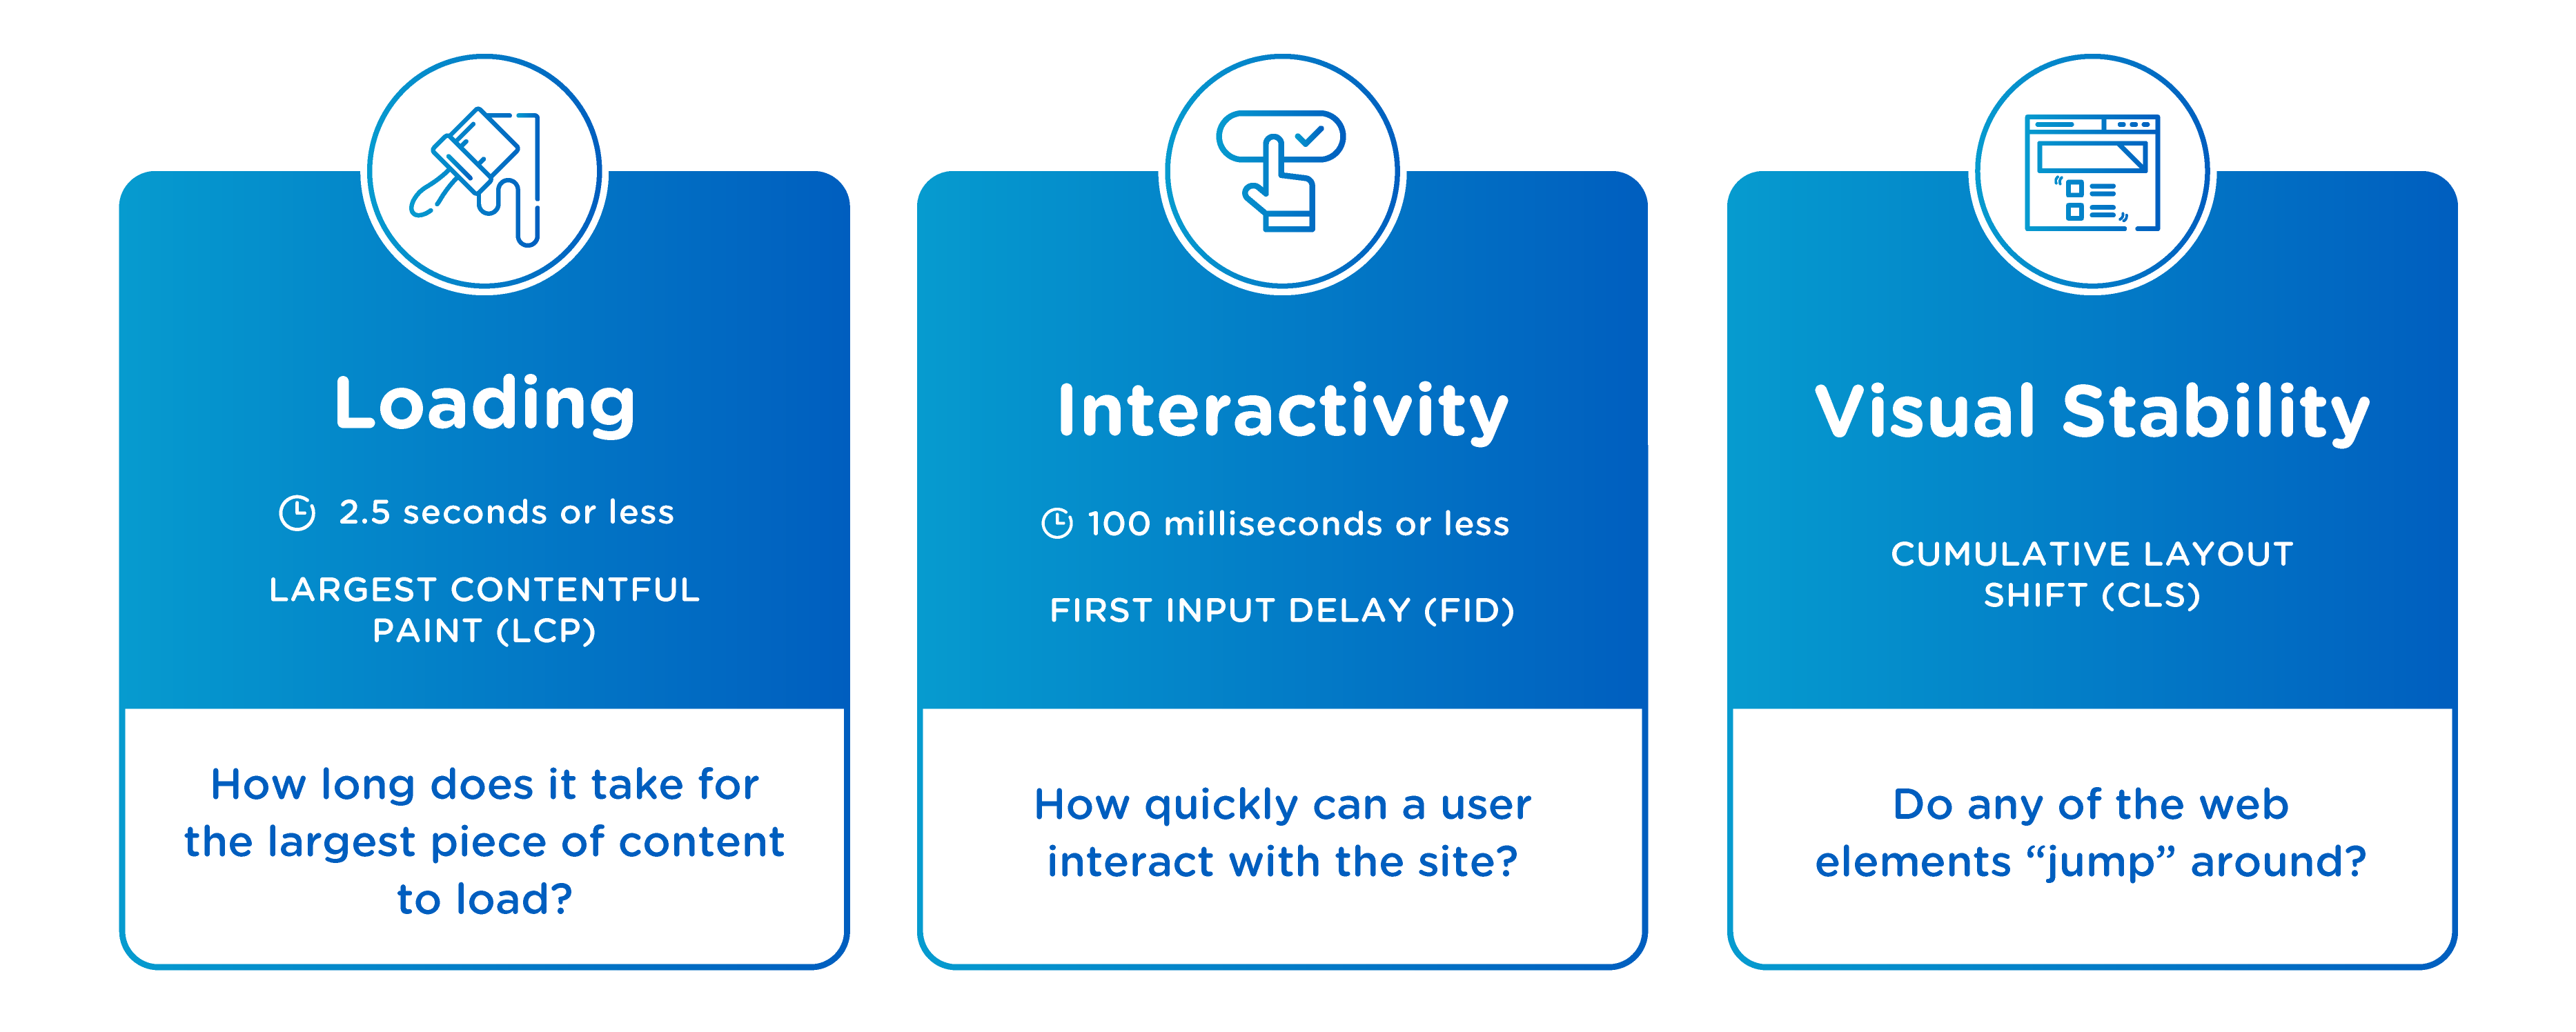 An infographic that breaks down the three factors in Google's Core Web Vitals: loading, interactivity, and visual stability. These factors are explained in the blog entry text.